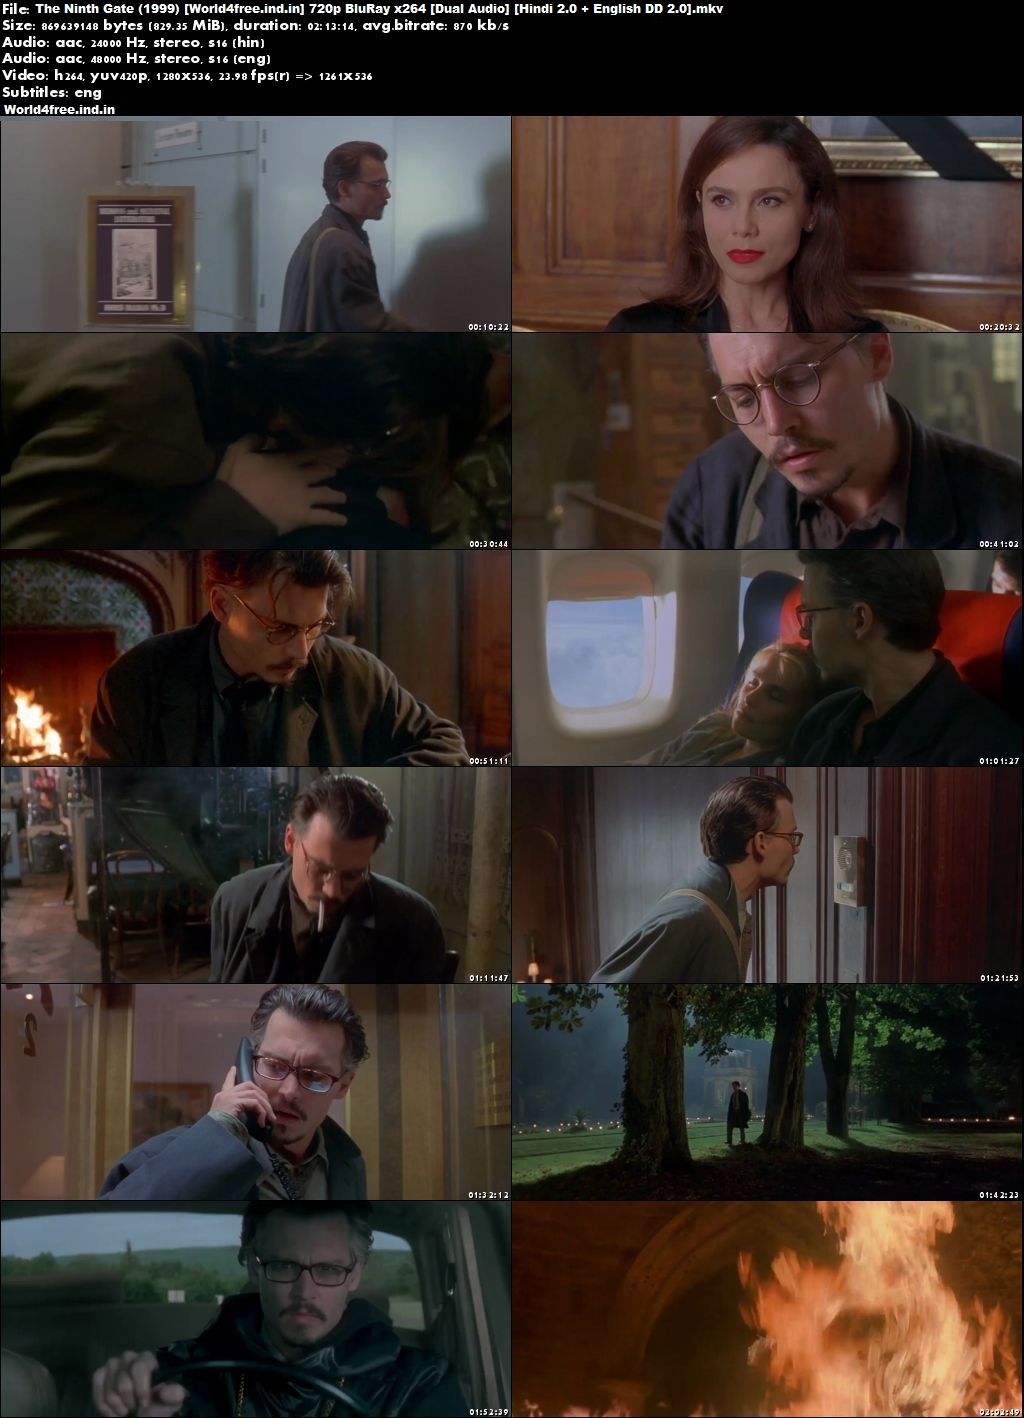 The Ninth Gate 1999 world4freeus Hindi English BRRip 720p Dual Audio